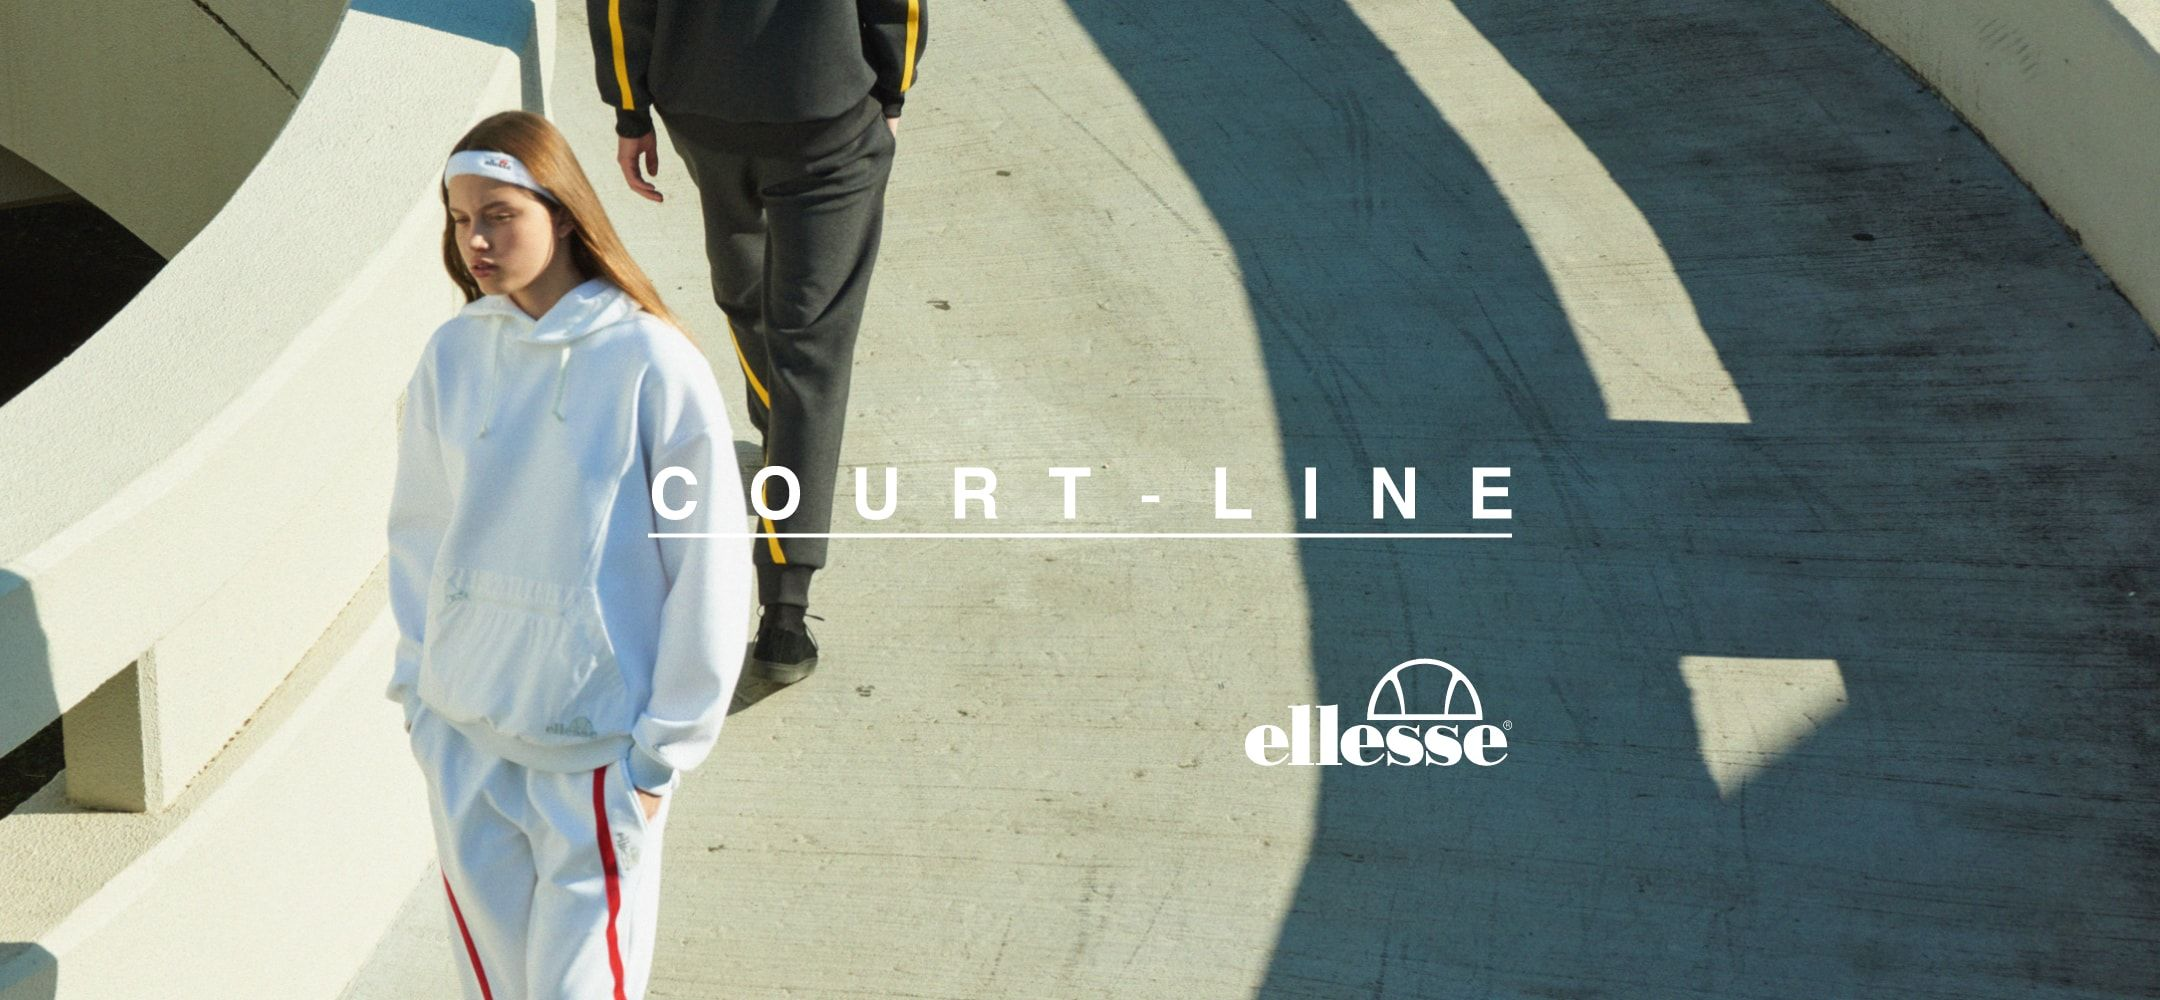 Court Line Collection